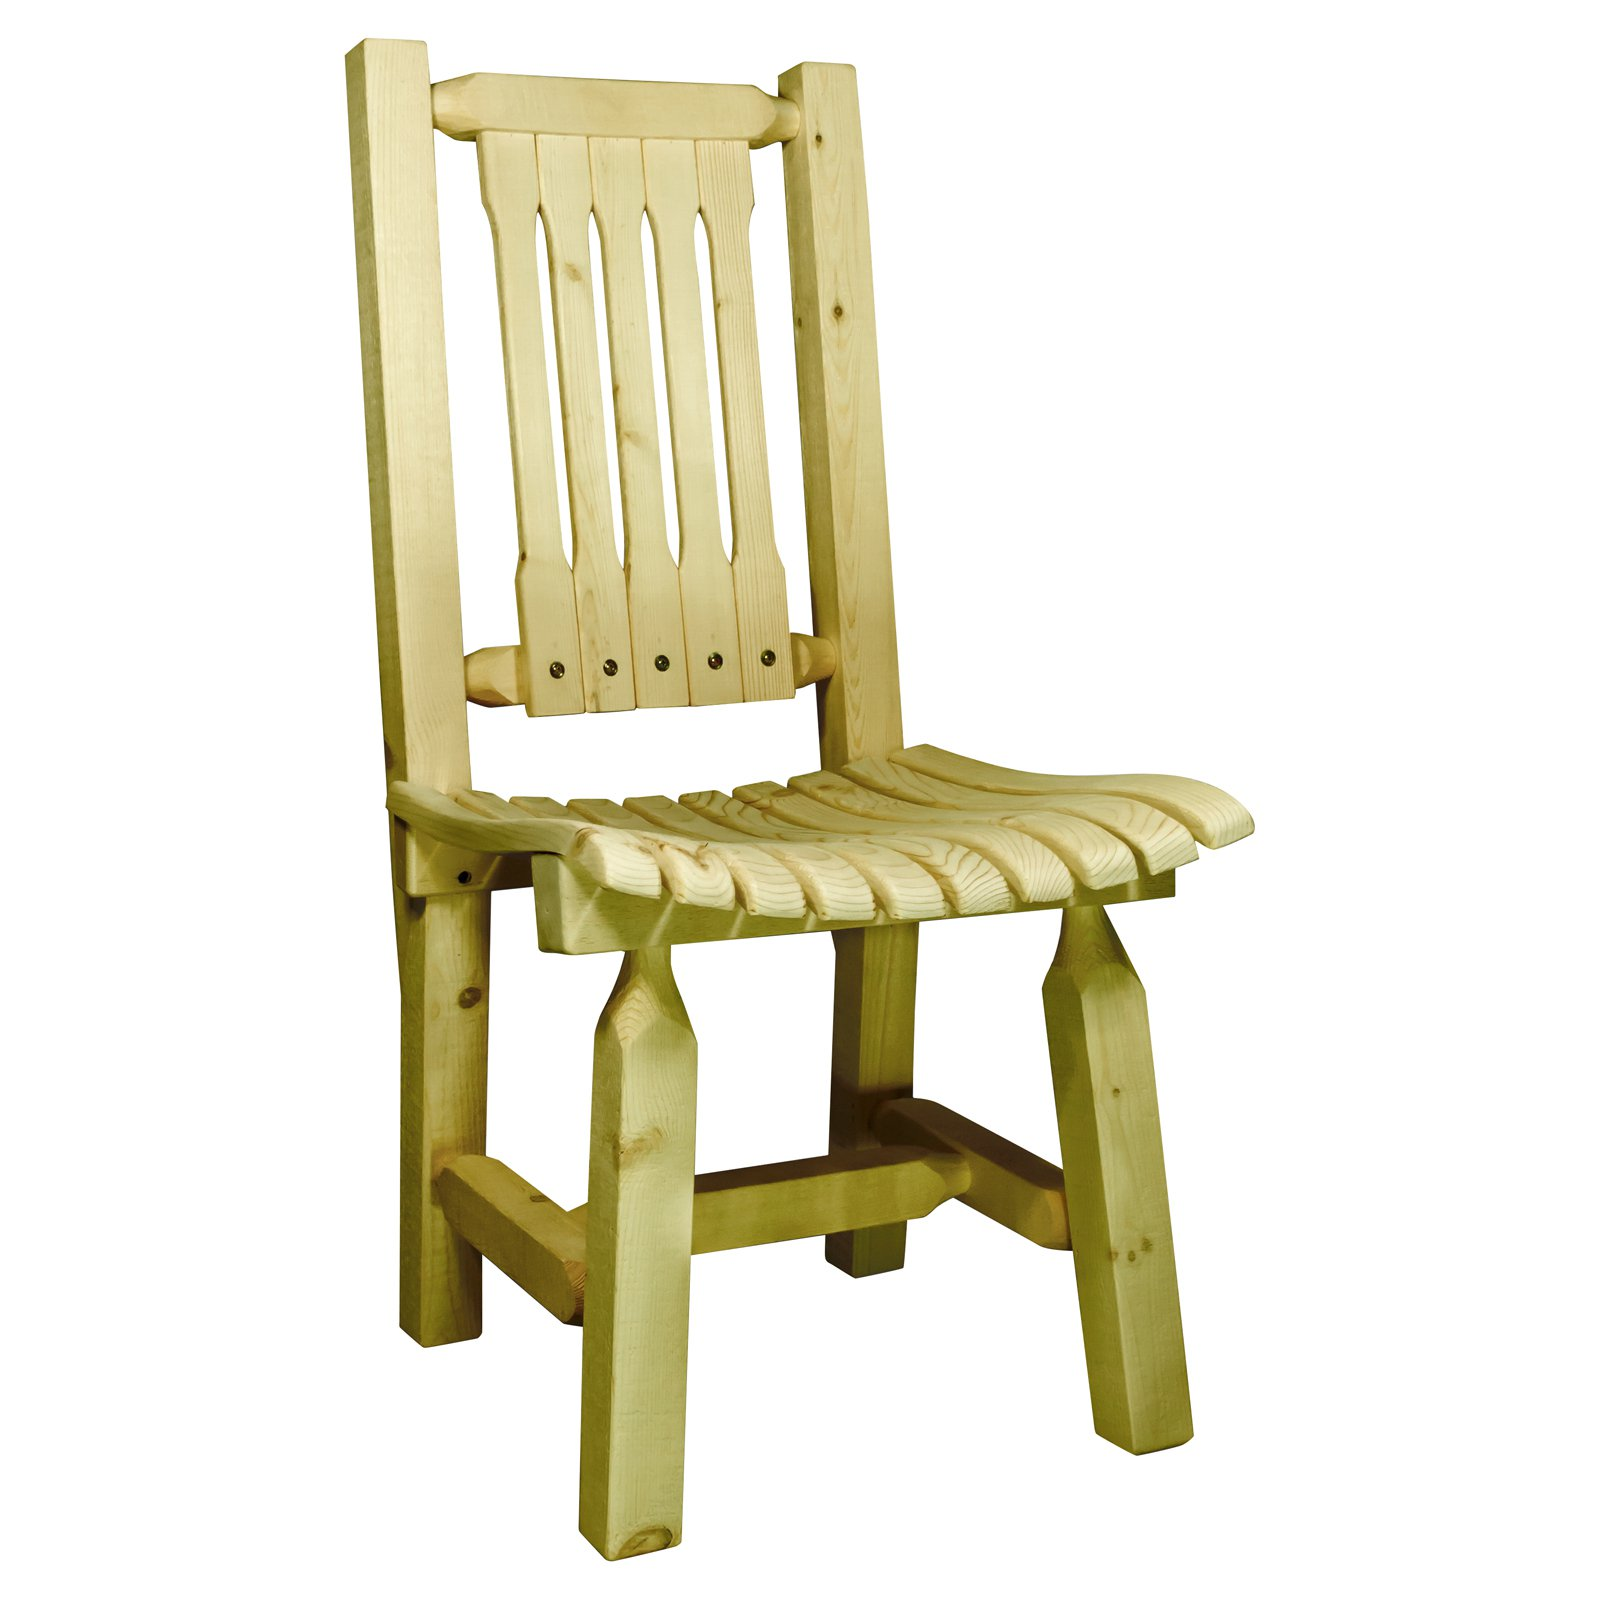 Montana Woodworks Homestead Patio Chair